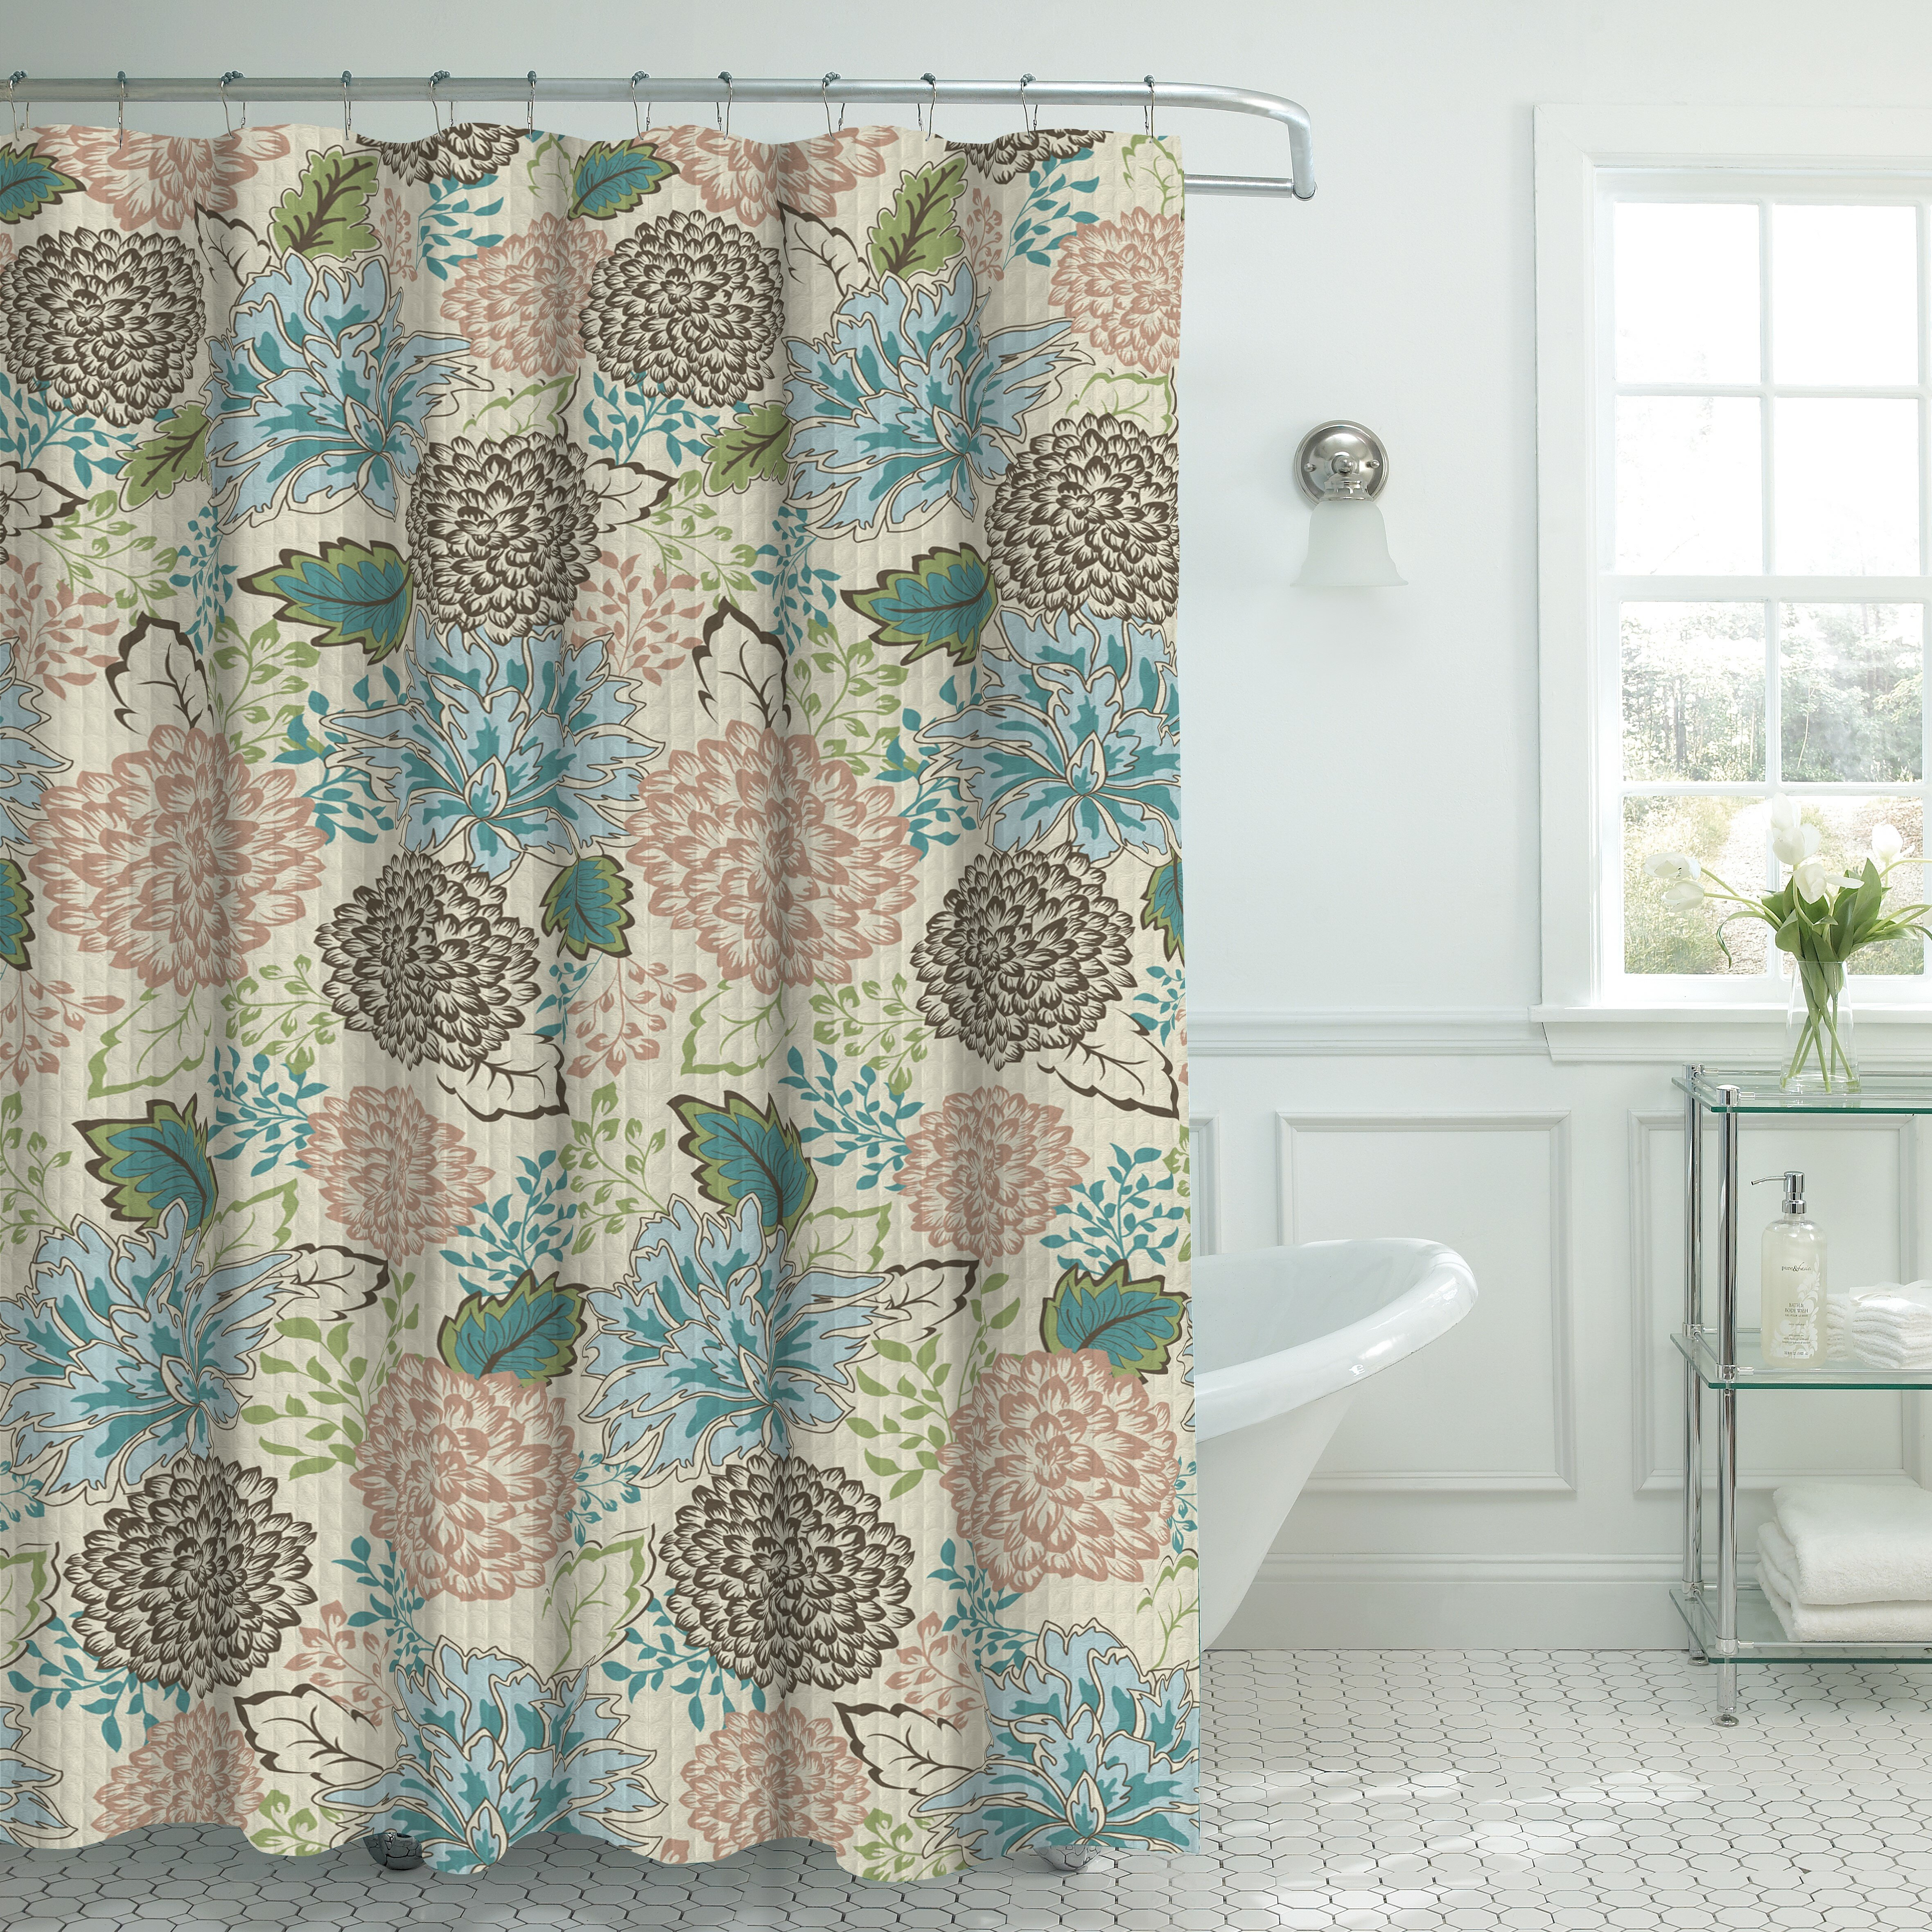 Maxman Fabric Weave Textured Floral Shower Curtain Set